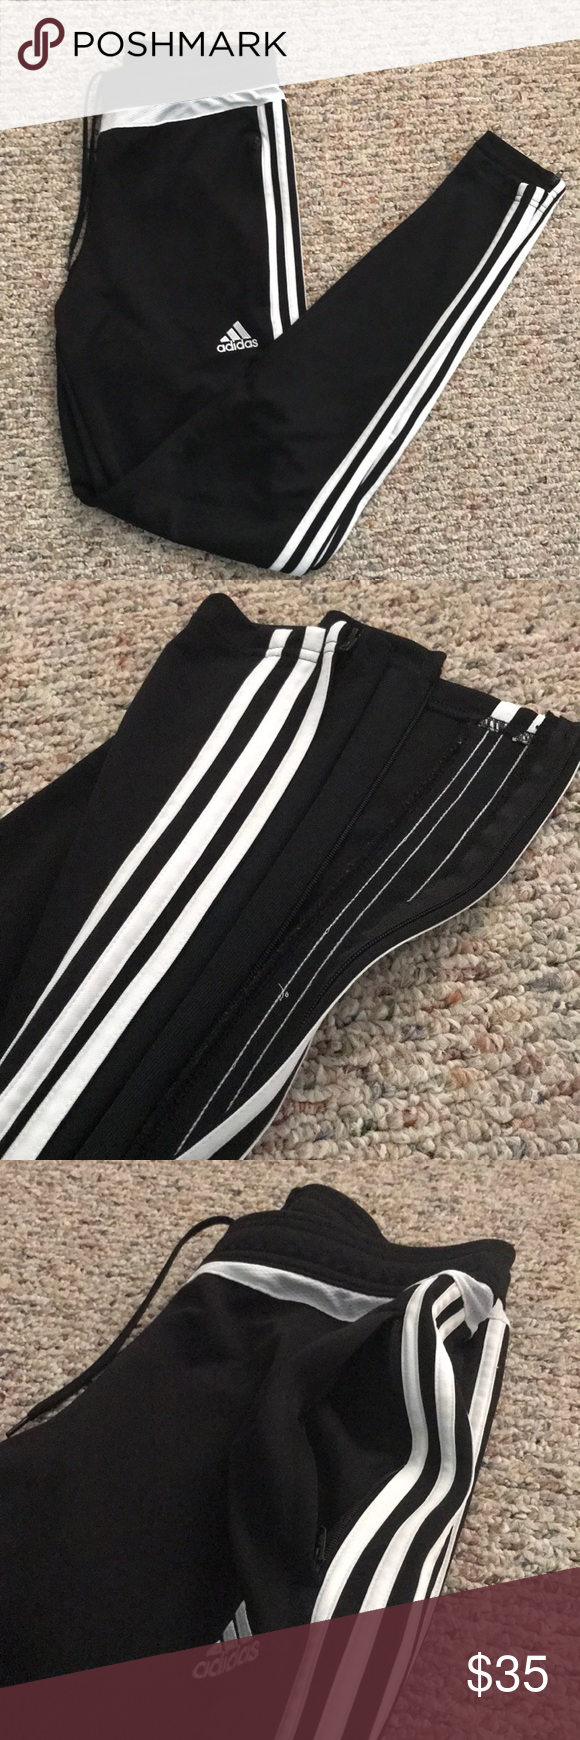 Adidas Climacool Pants Adidas track pants with Climacool ...